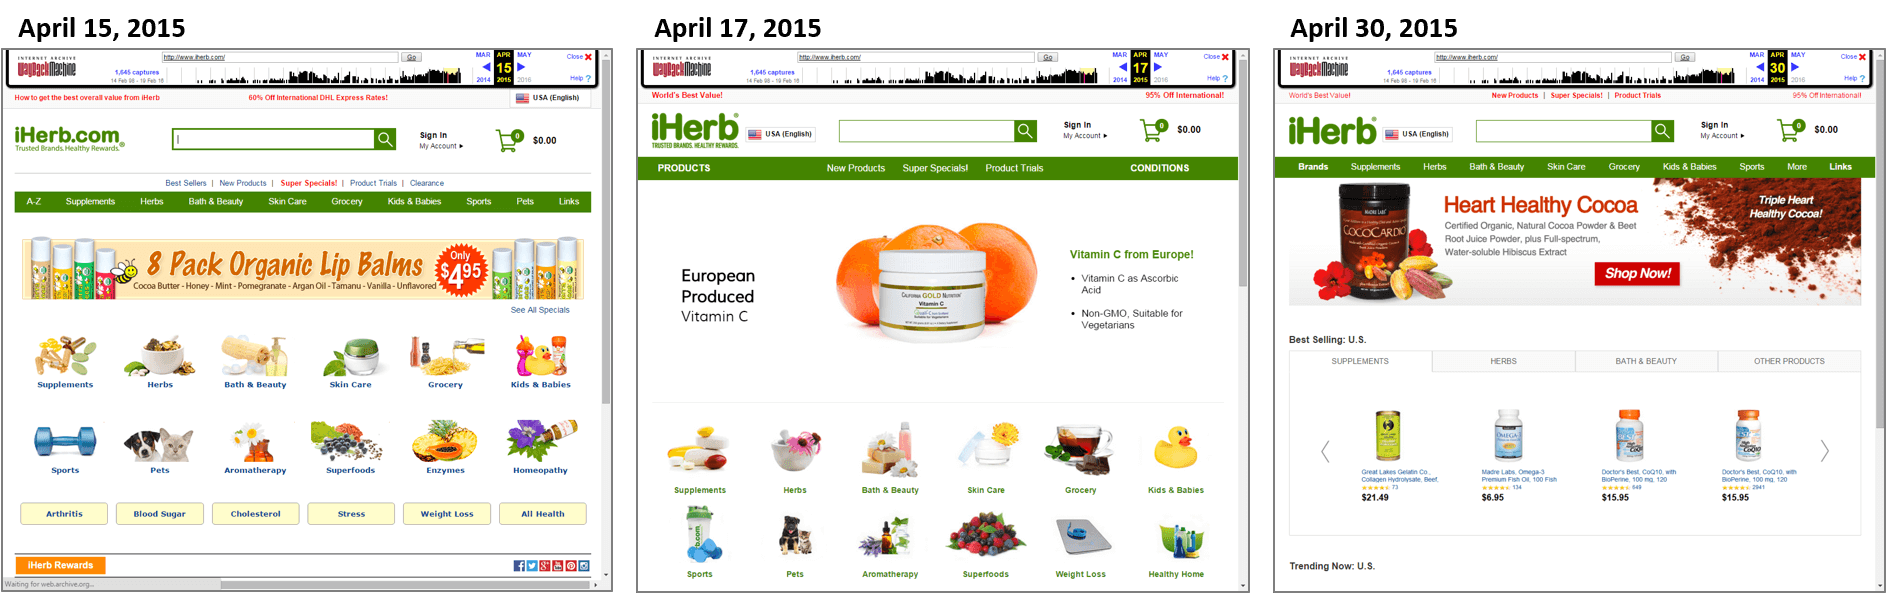 iherb.com homepage changes in April 2015